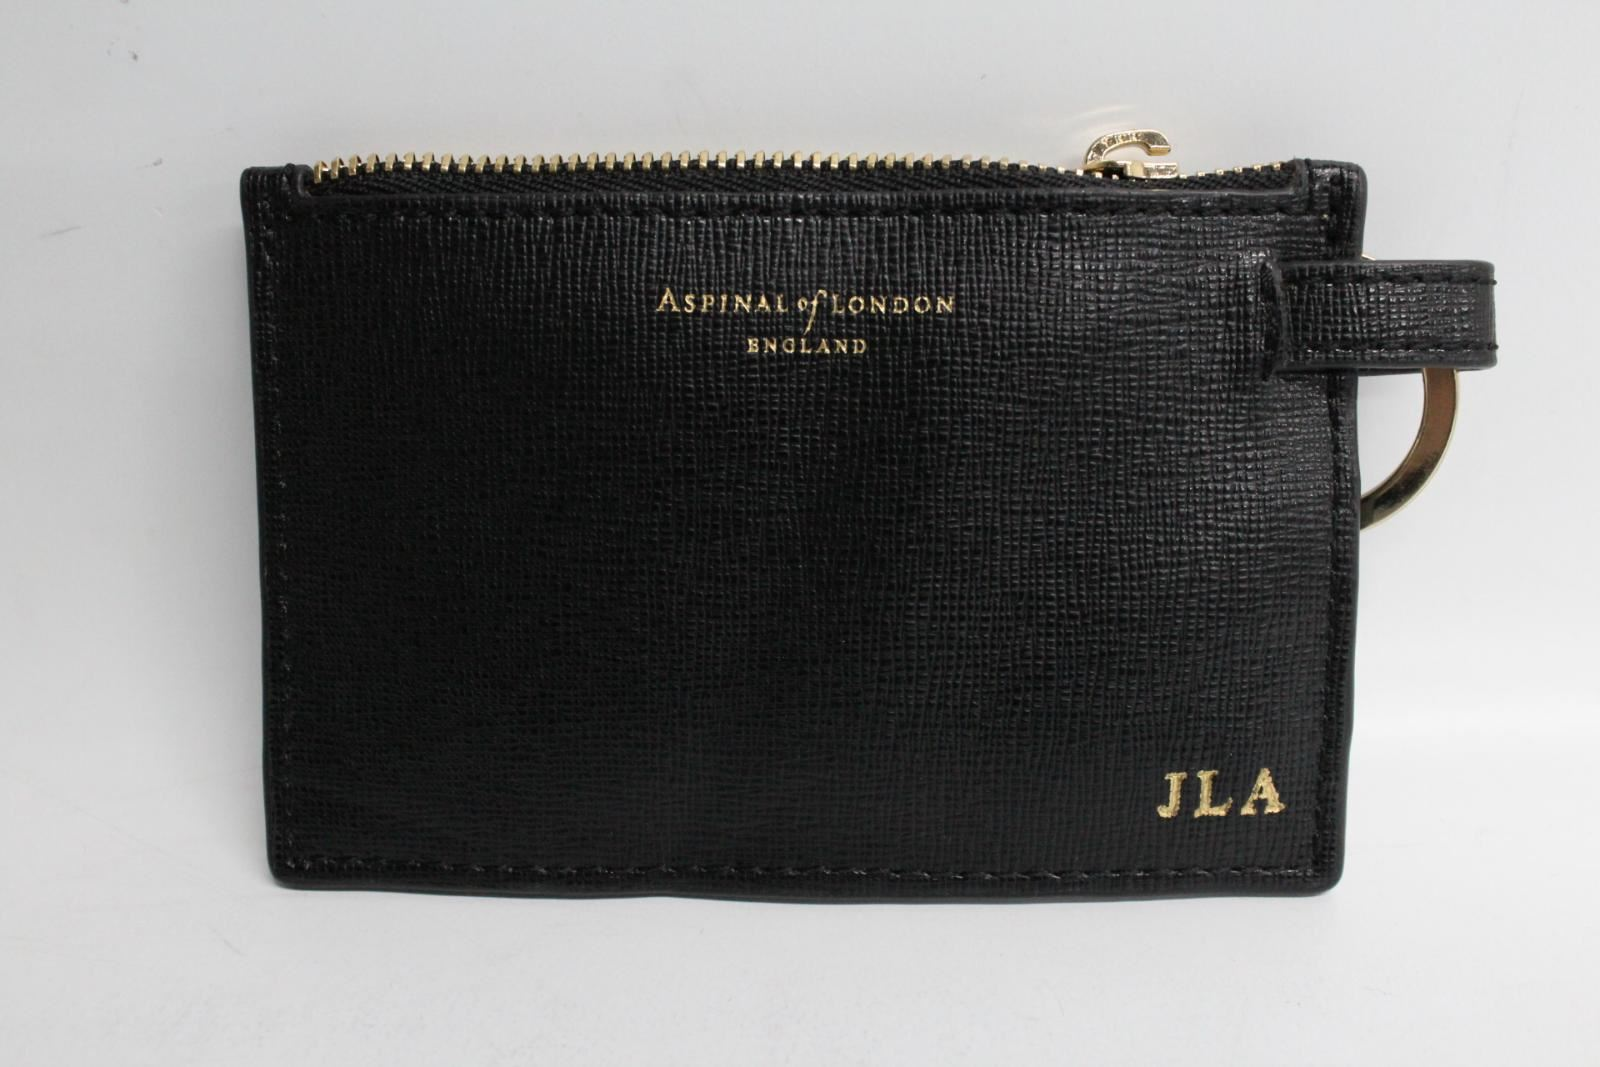 ASPINAL-OF-LONDON-Black-Leather-Small-Coin-Flat-Pouch-Wallet-With-Initials-JLA